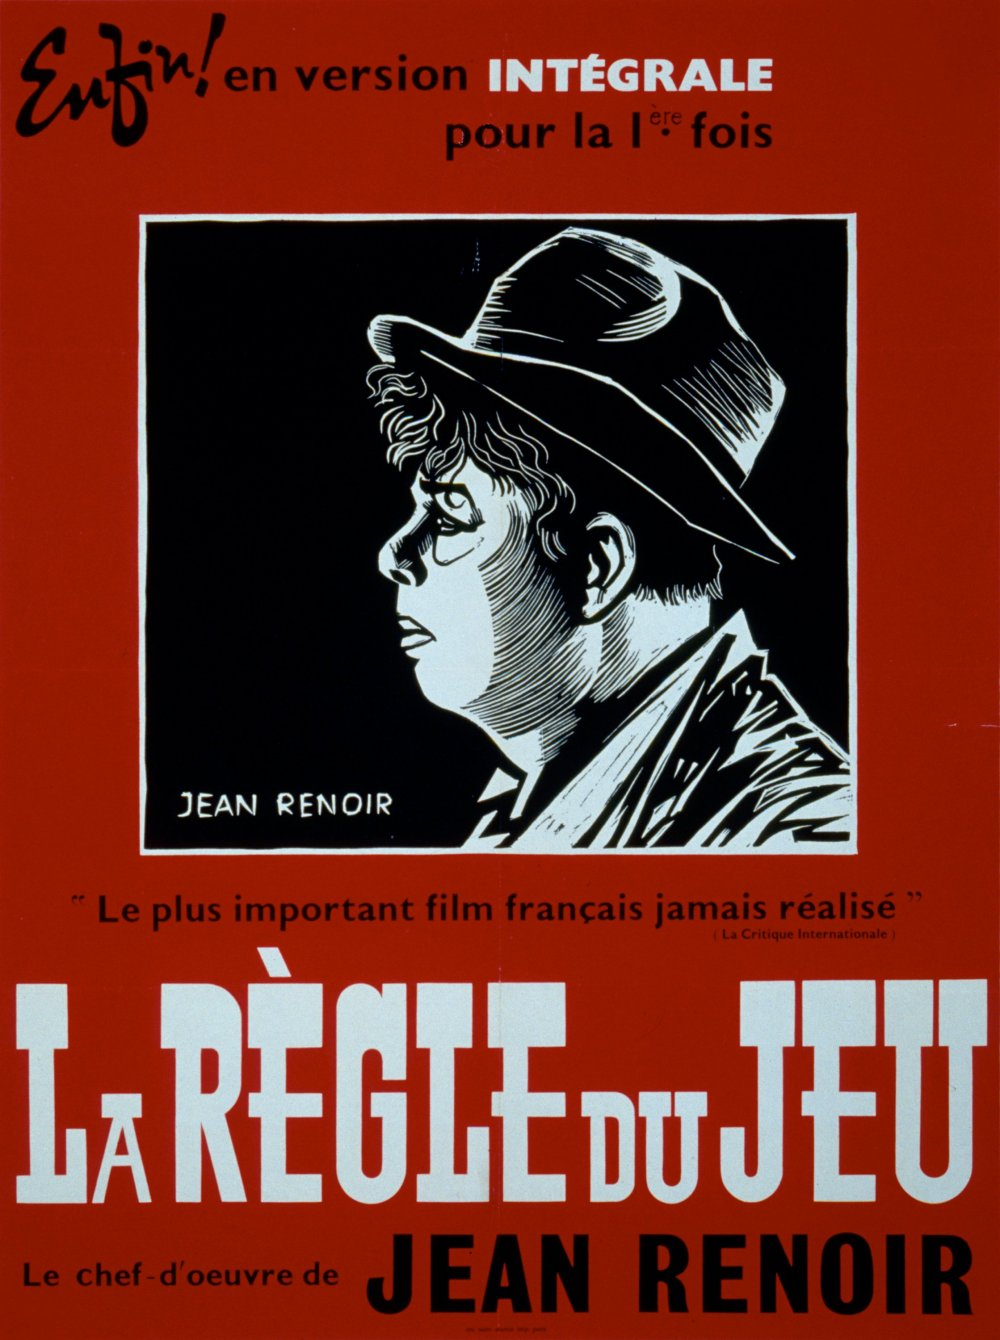 The French poster for the 1959 restoration of La Règle du jeu (1939)